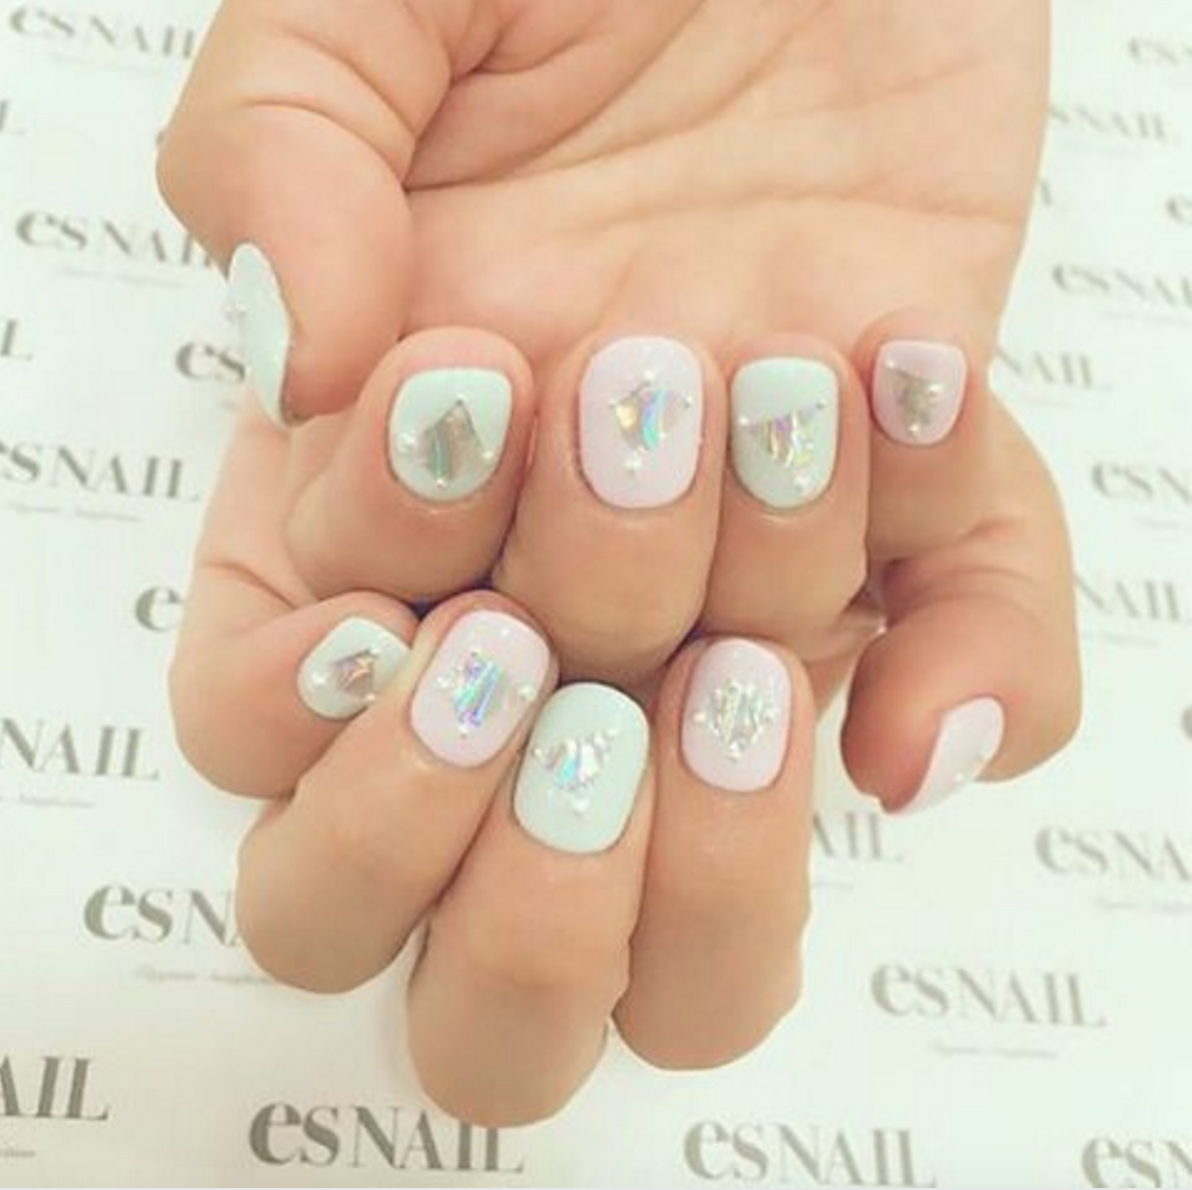 Try Stylish Winter Nail Designs Easy and Nail Polish Styles ...